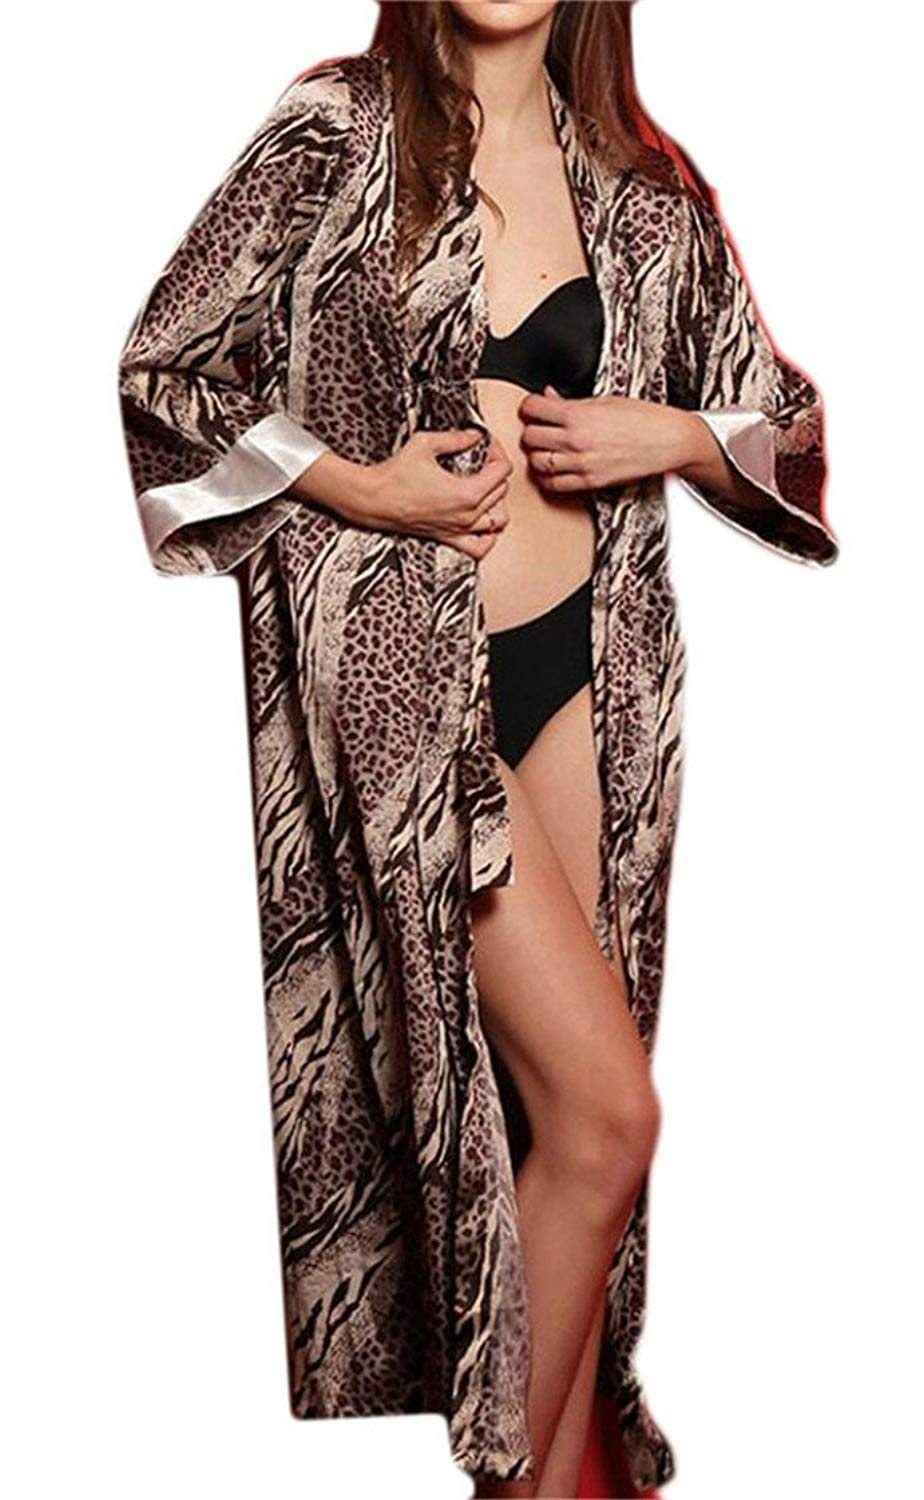 e64ccecd5e MLG Womens Satin Silk Leopard Print Nightdress Bathrobe Pajamas Robes